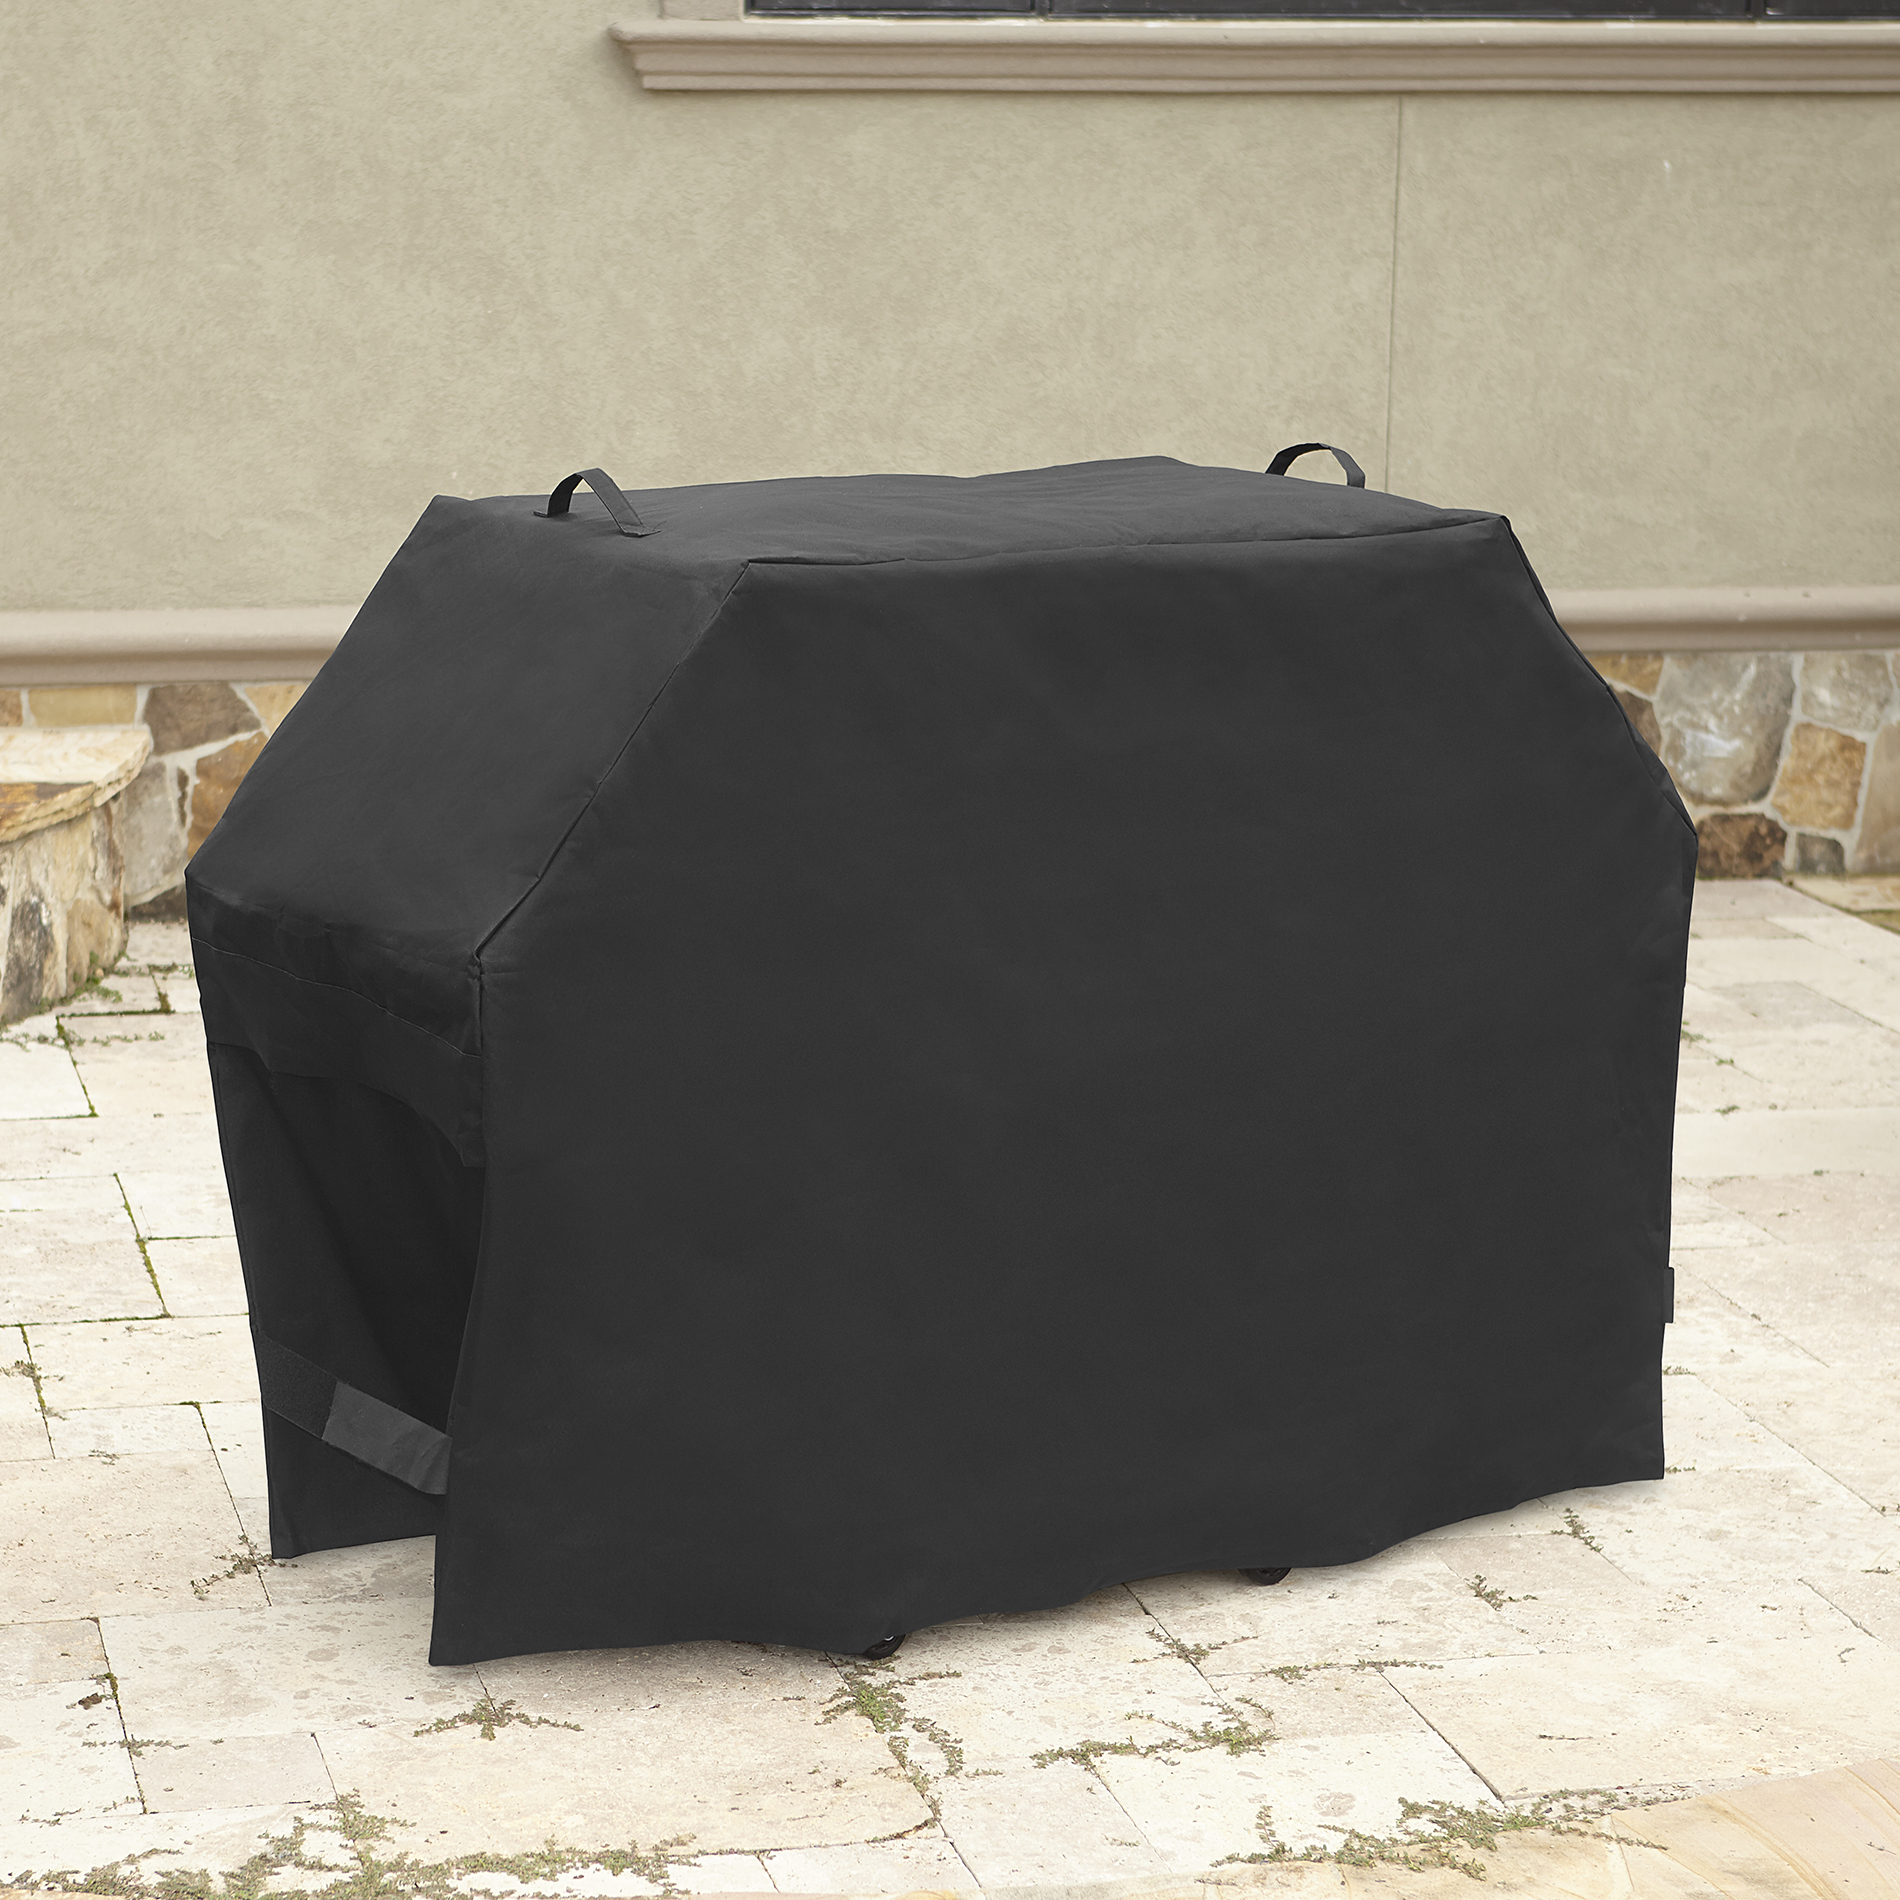 Kenmore Gas Grill Covers